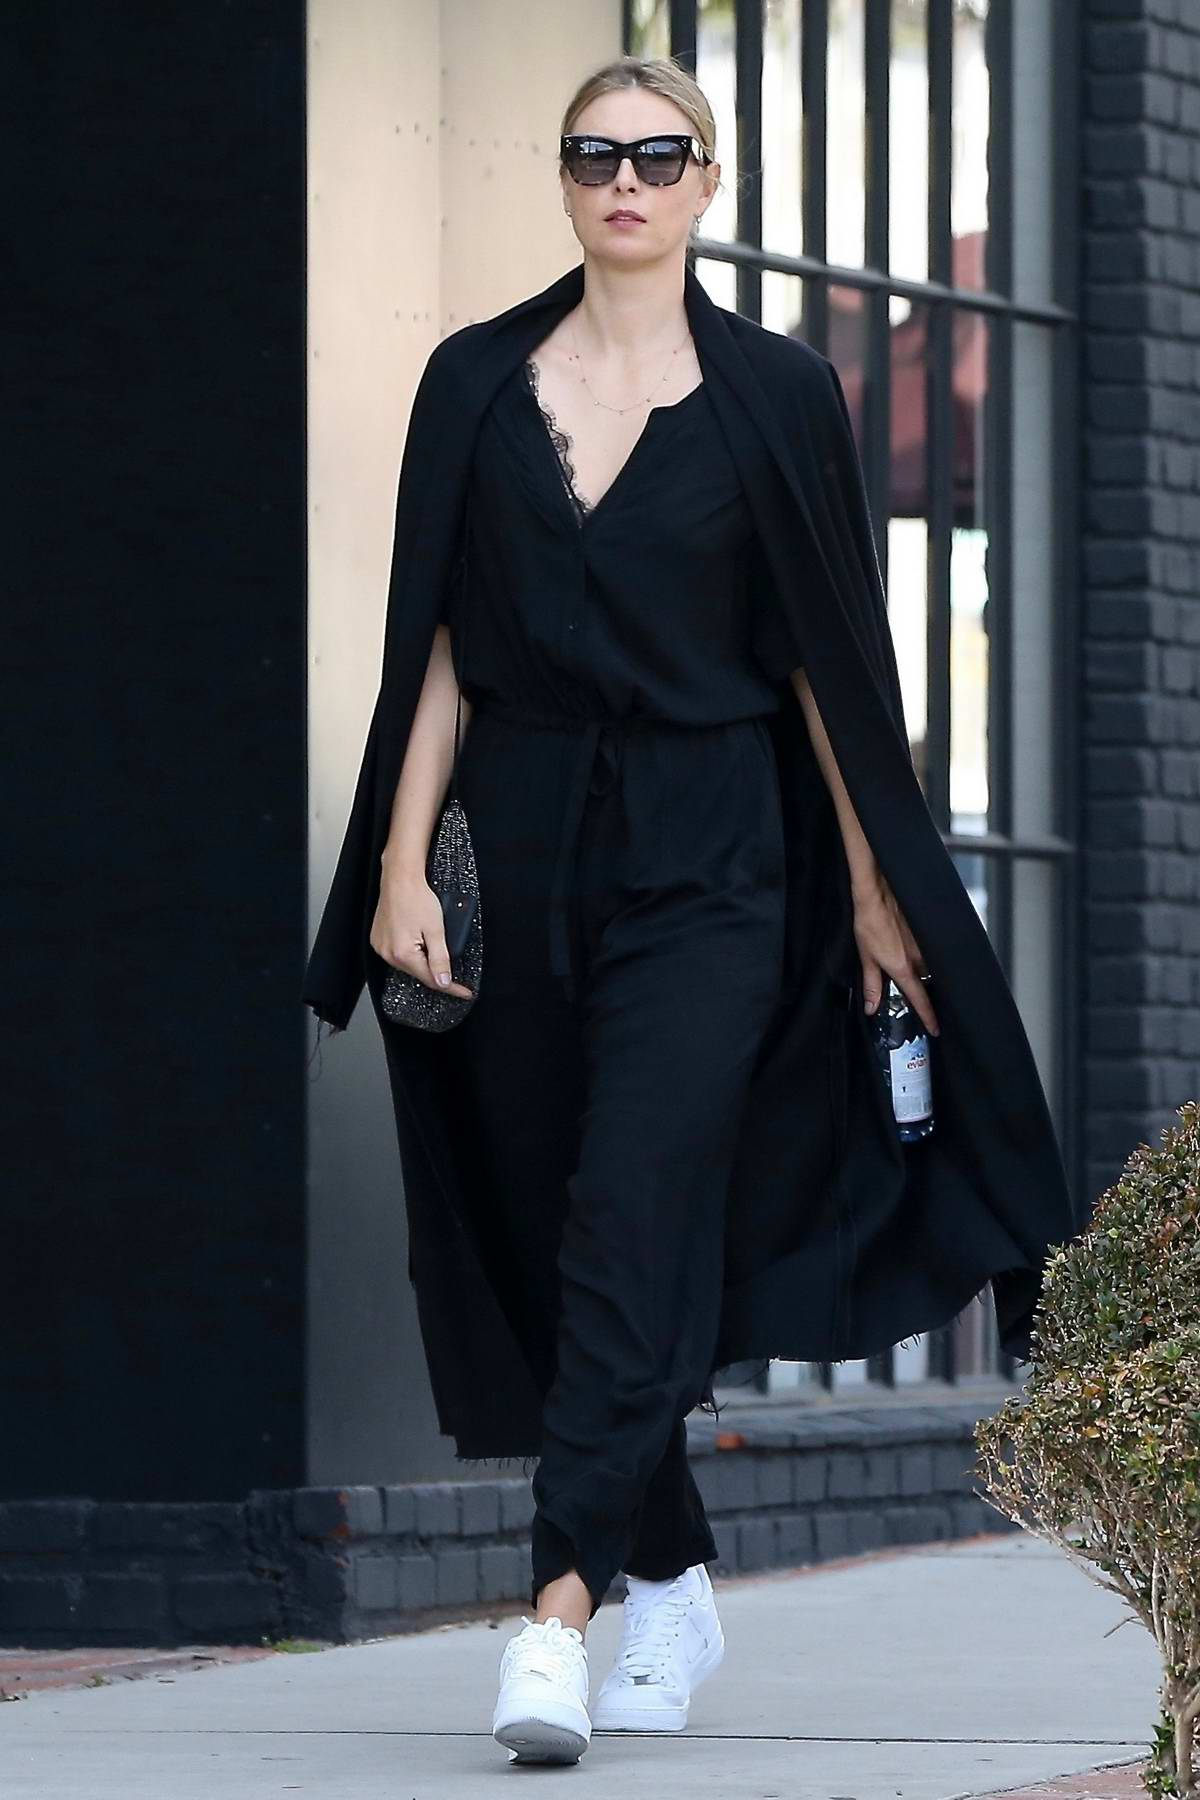 Maria Sharapova looks gorgeous in black as she steps out for shopping in West Hollywood, Los Angeles